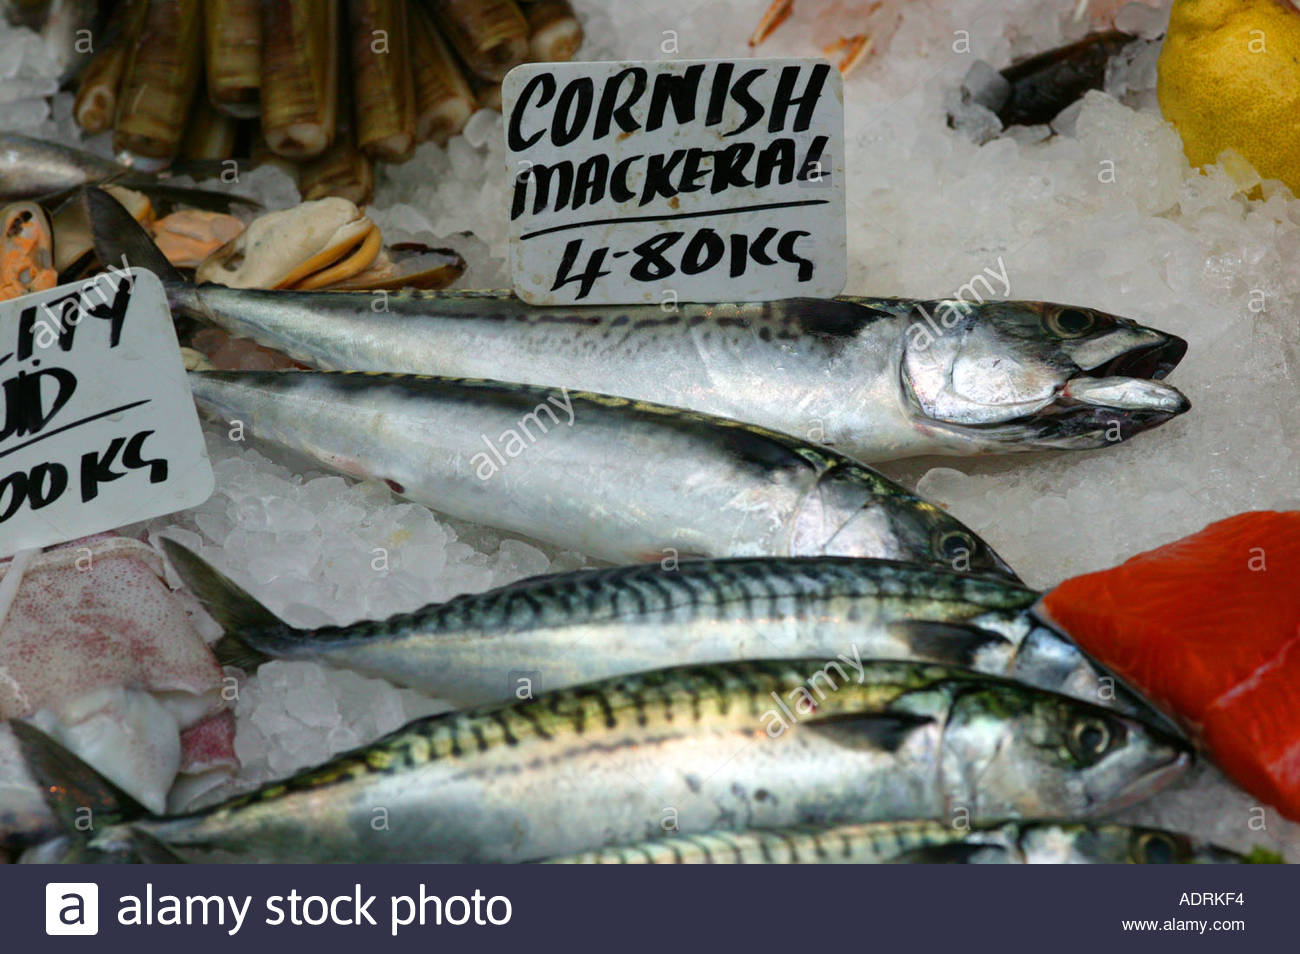 Cornish mackerel fishmonger Borough market London England - Stock Image